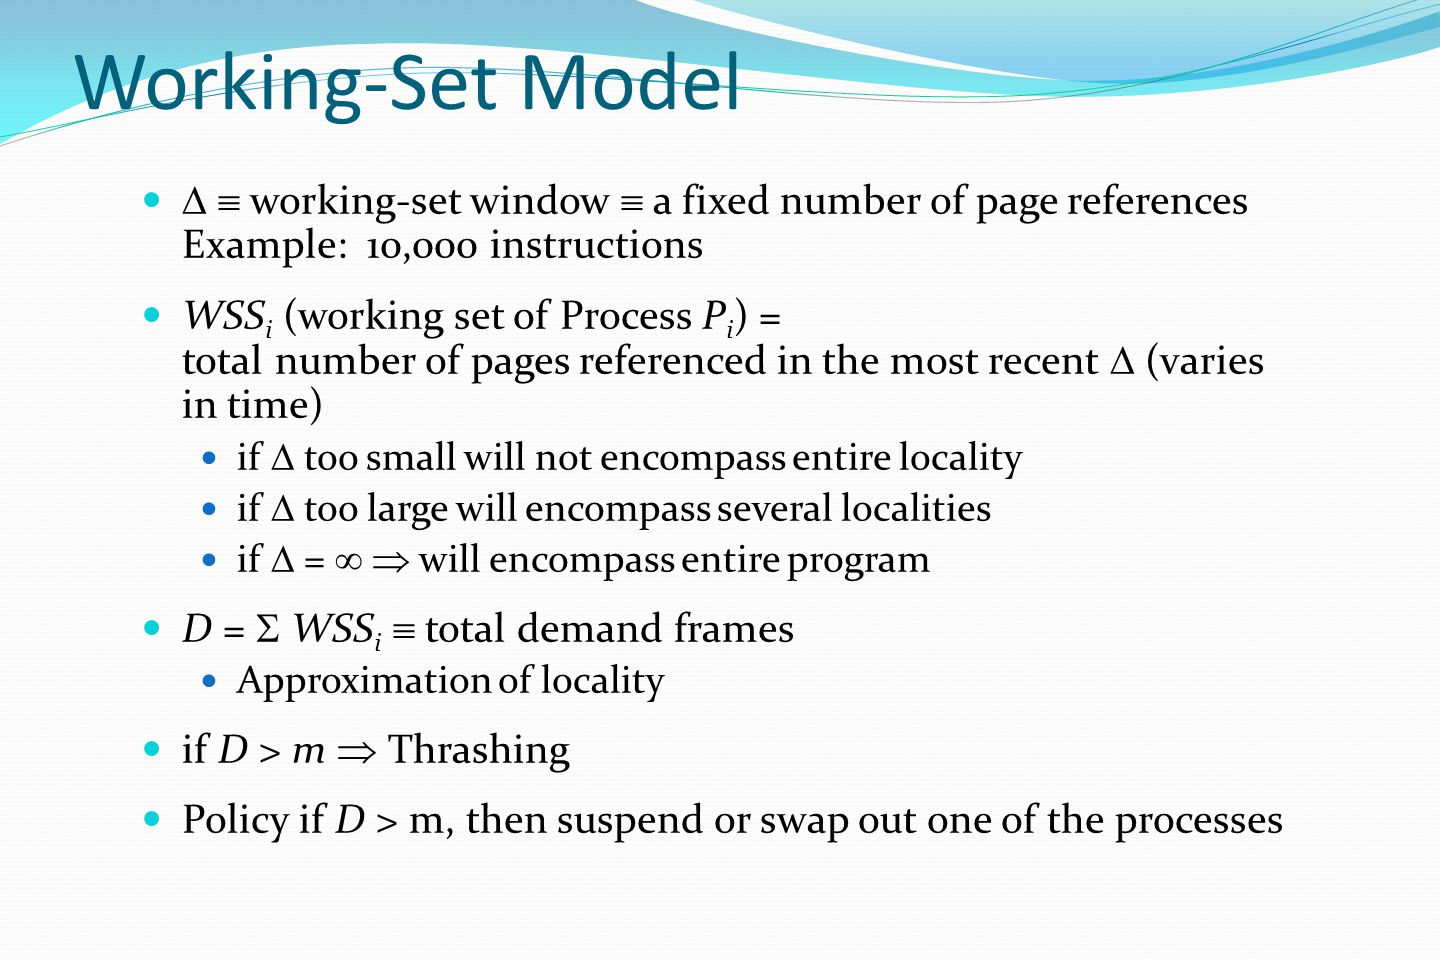 Working-Set Model   working-set window  a fixed number of page references Example: 10,000 instructions WSS i (working set of Process P i ) = total number of pages referenced in the most recent  (varies in time) if  too small will not encompass entire locality if  too large will encompass several localities if  =   will encompass entire program D =  WSS i  total demand frames Approximation of locality if D > m  Thrashing Policy if D > m, then suspend or swap out one of the processes